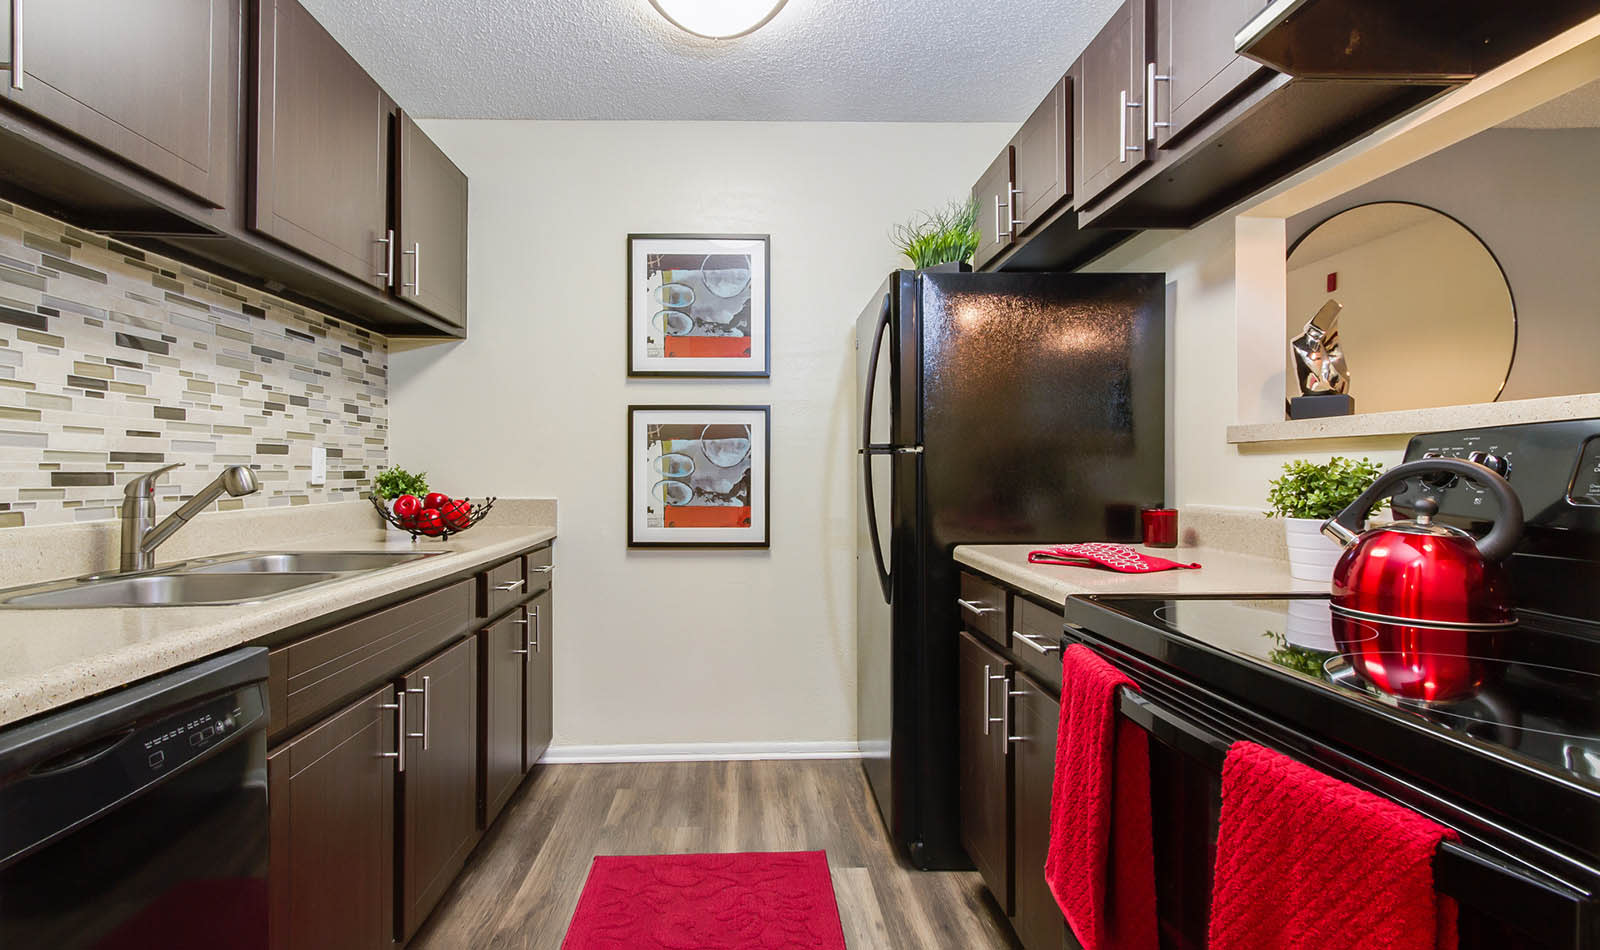 Spacious Modern Kitchen With Black Appliances at The Reserve at Mandarin in Jacksonville, FL